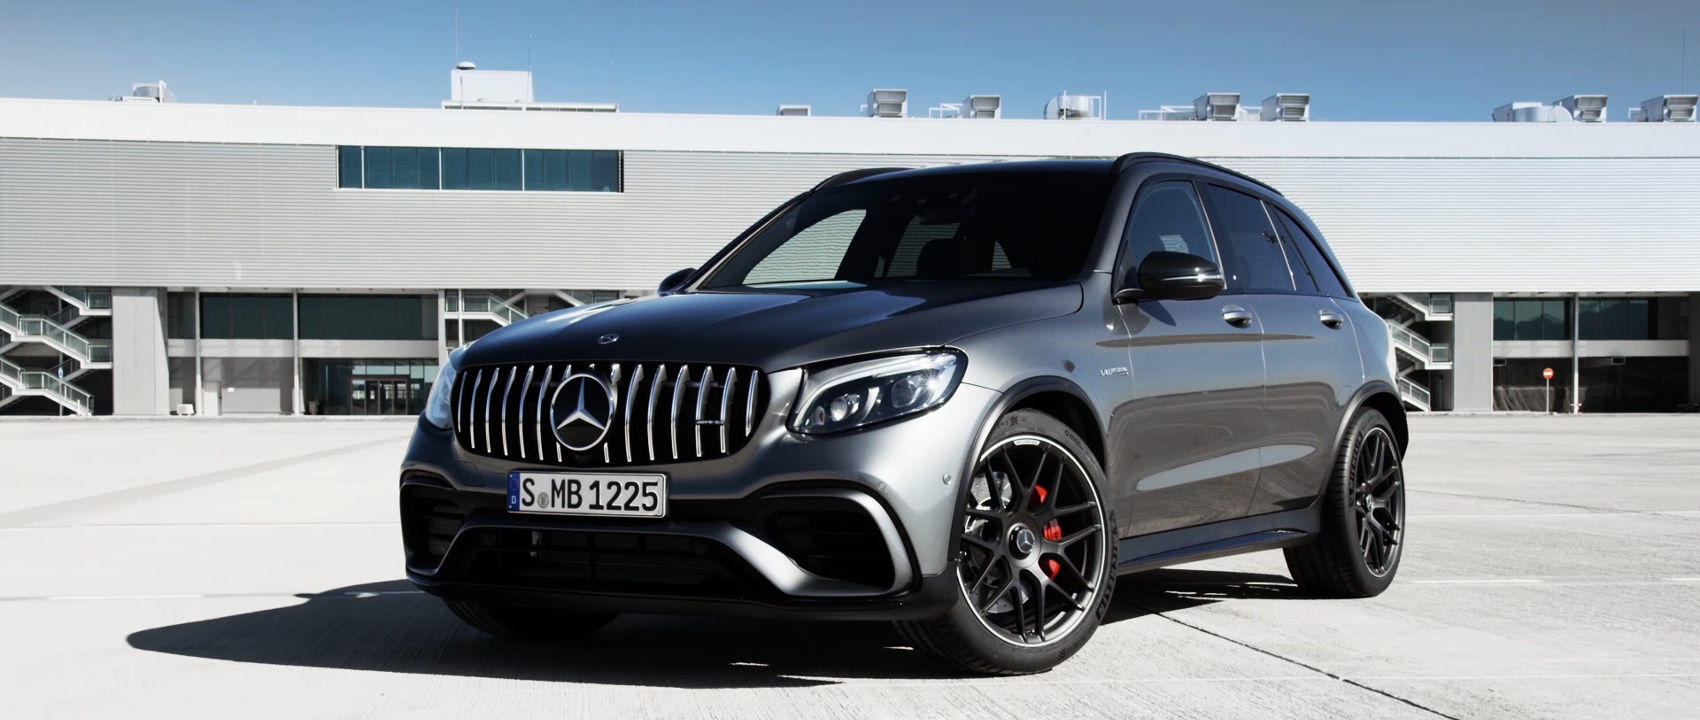 December launch mercedes amg glc 63 s tynan motors car sales for Mercedes benz amg 63